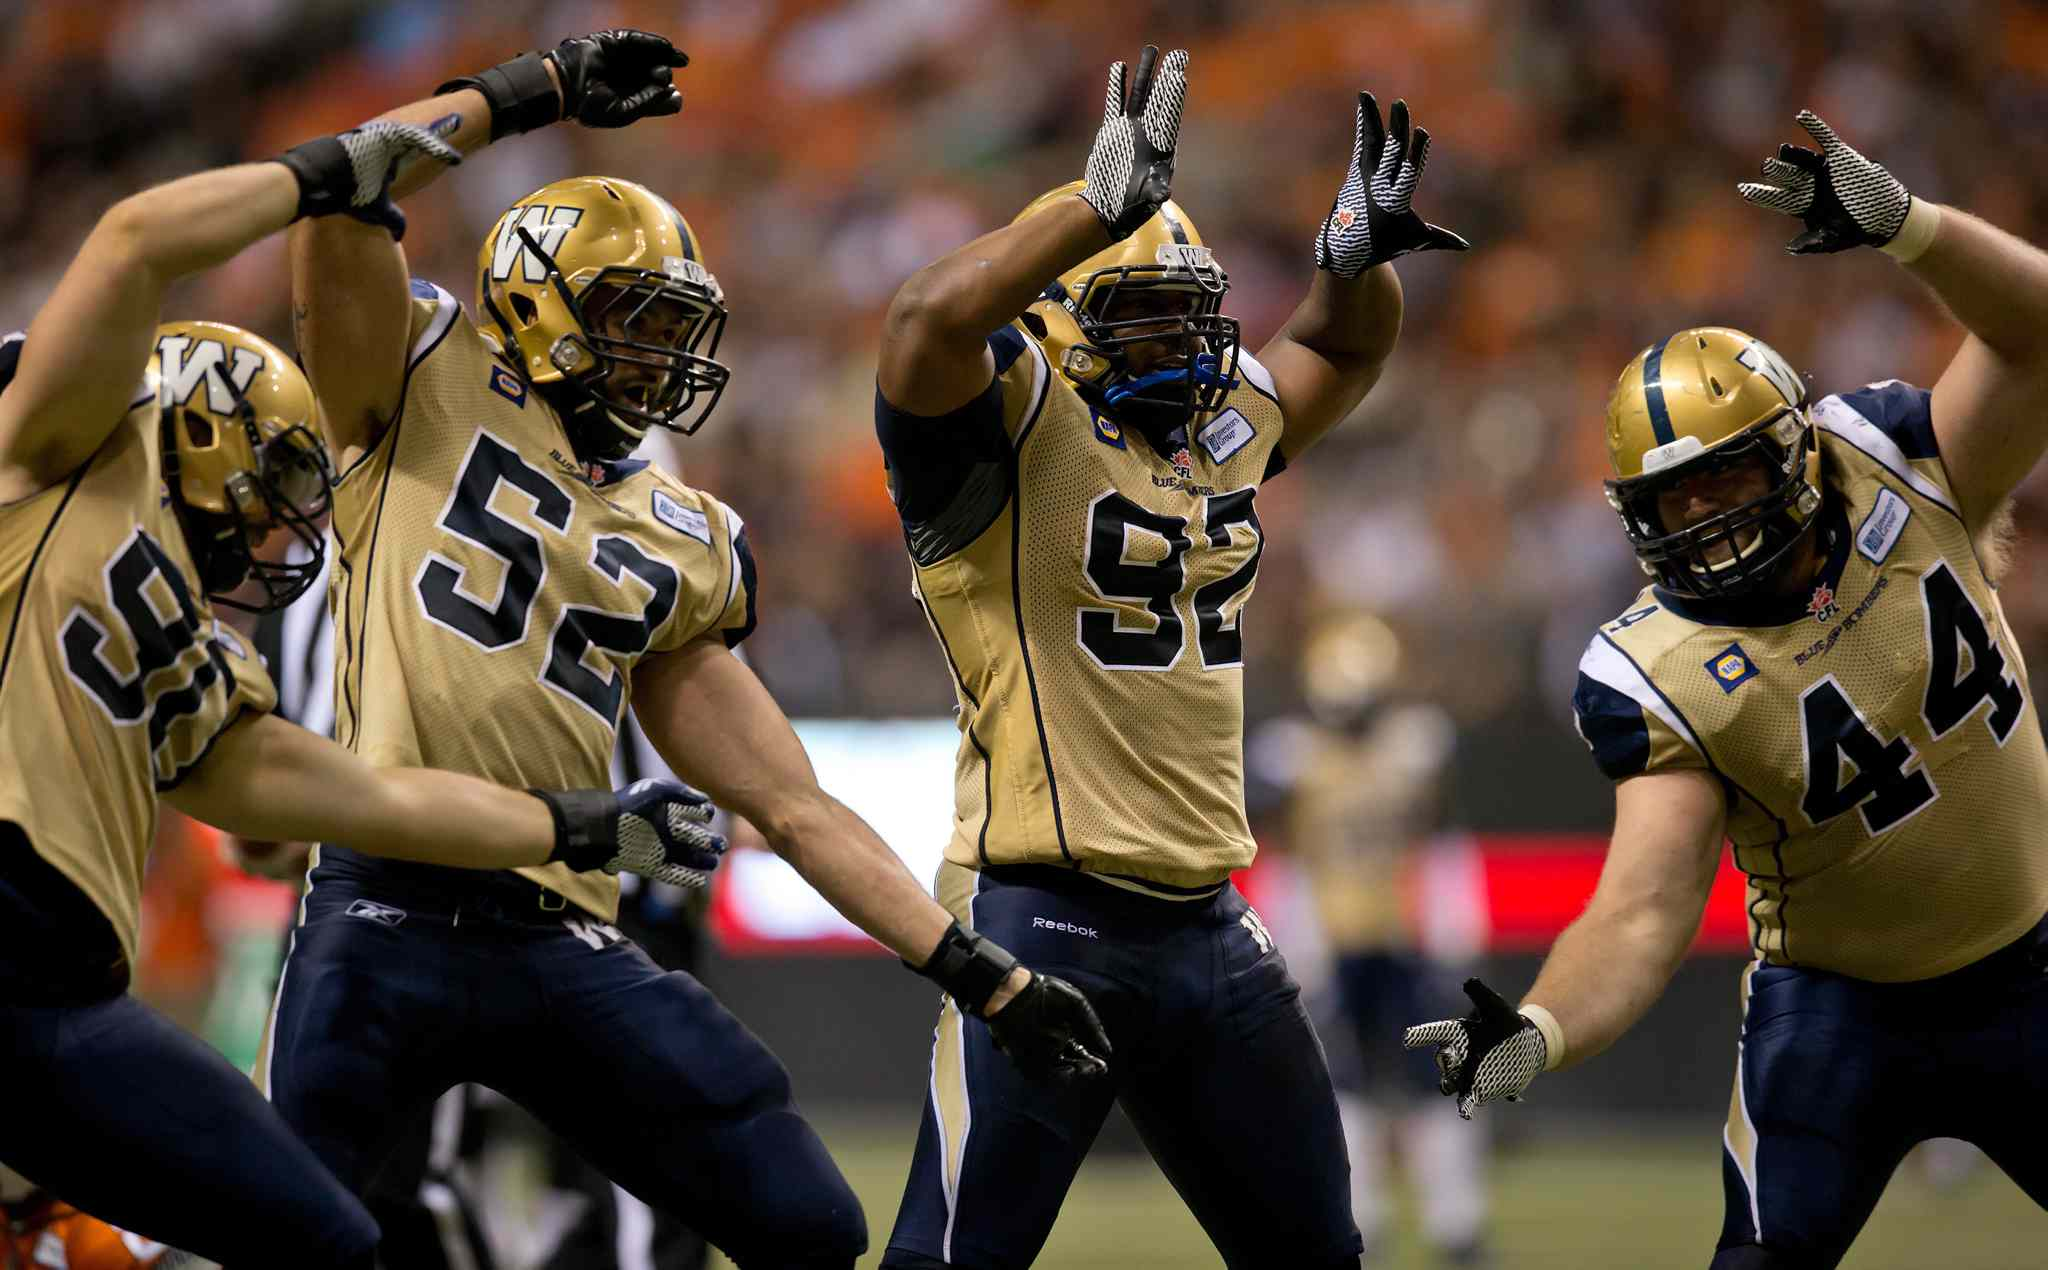 Winnipeg Blue Bombers' Greg Peach, from left to right, Louie Richardson, Bryant Turner Jr. and Zach Anderson celebrate after Turner sacked B.C. Lions' quarterback Kevin Glenn during the second half of a CFL football game in Vancouver, B.C., on Friday July 25, 2014.